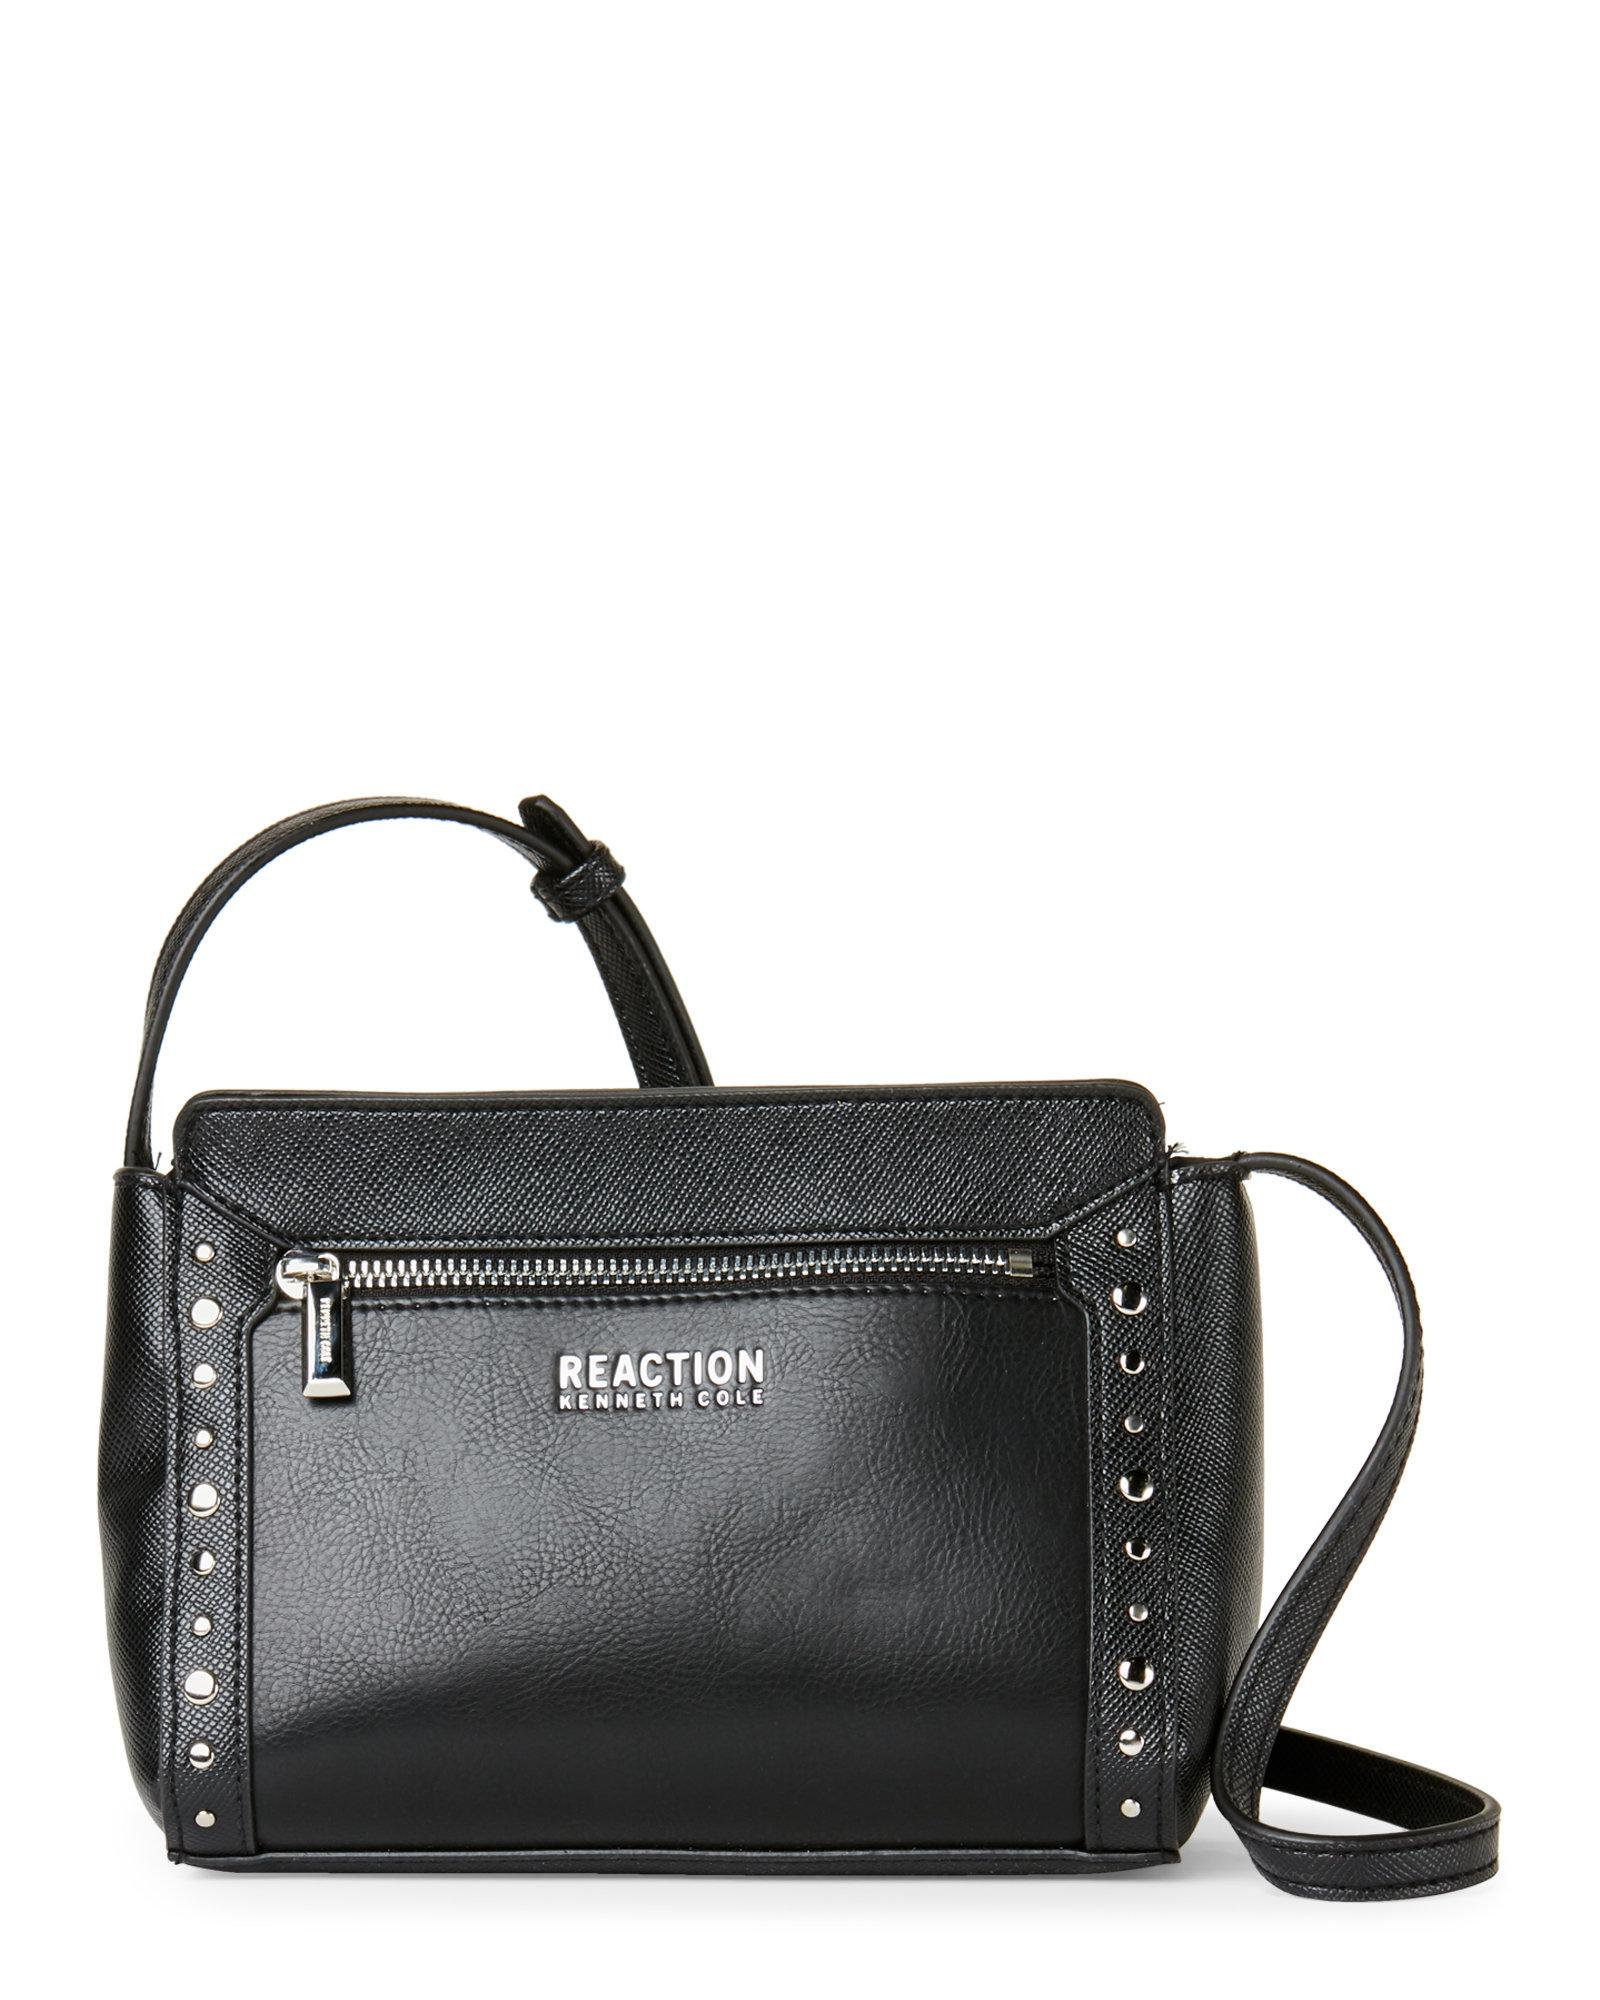 75da8a16b5d4 Lyst - Kenneth Cole Reaction Black Dana Mini Crossbody in Black